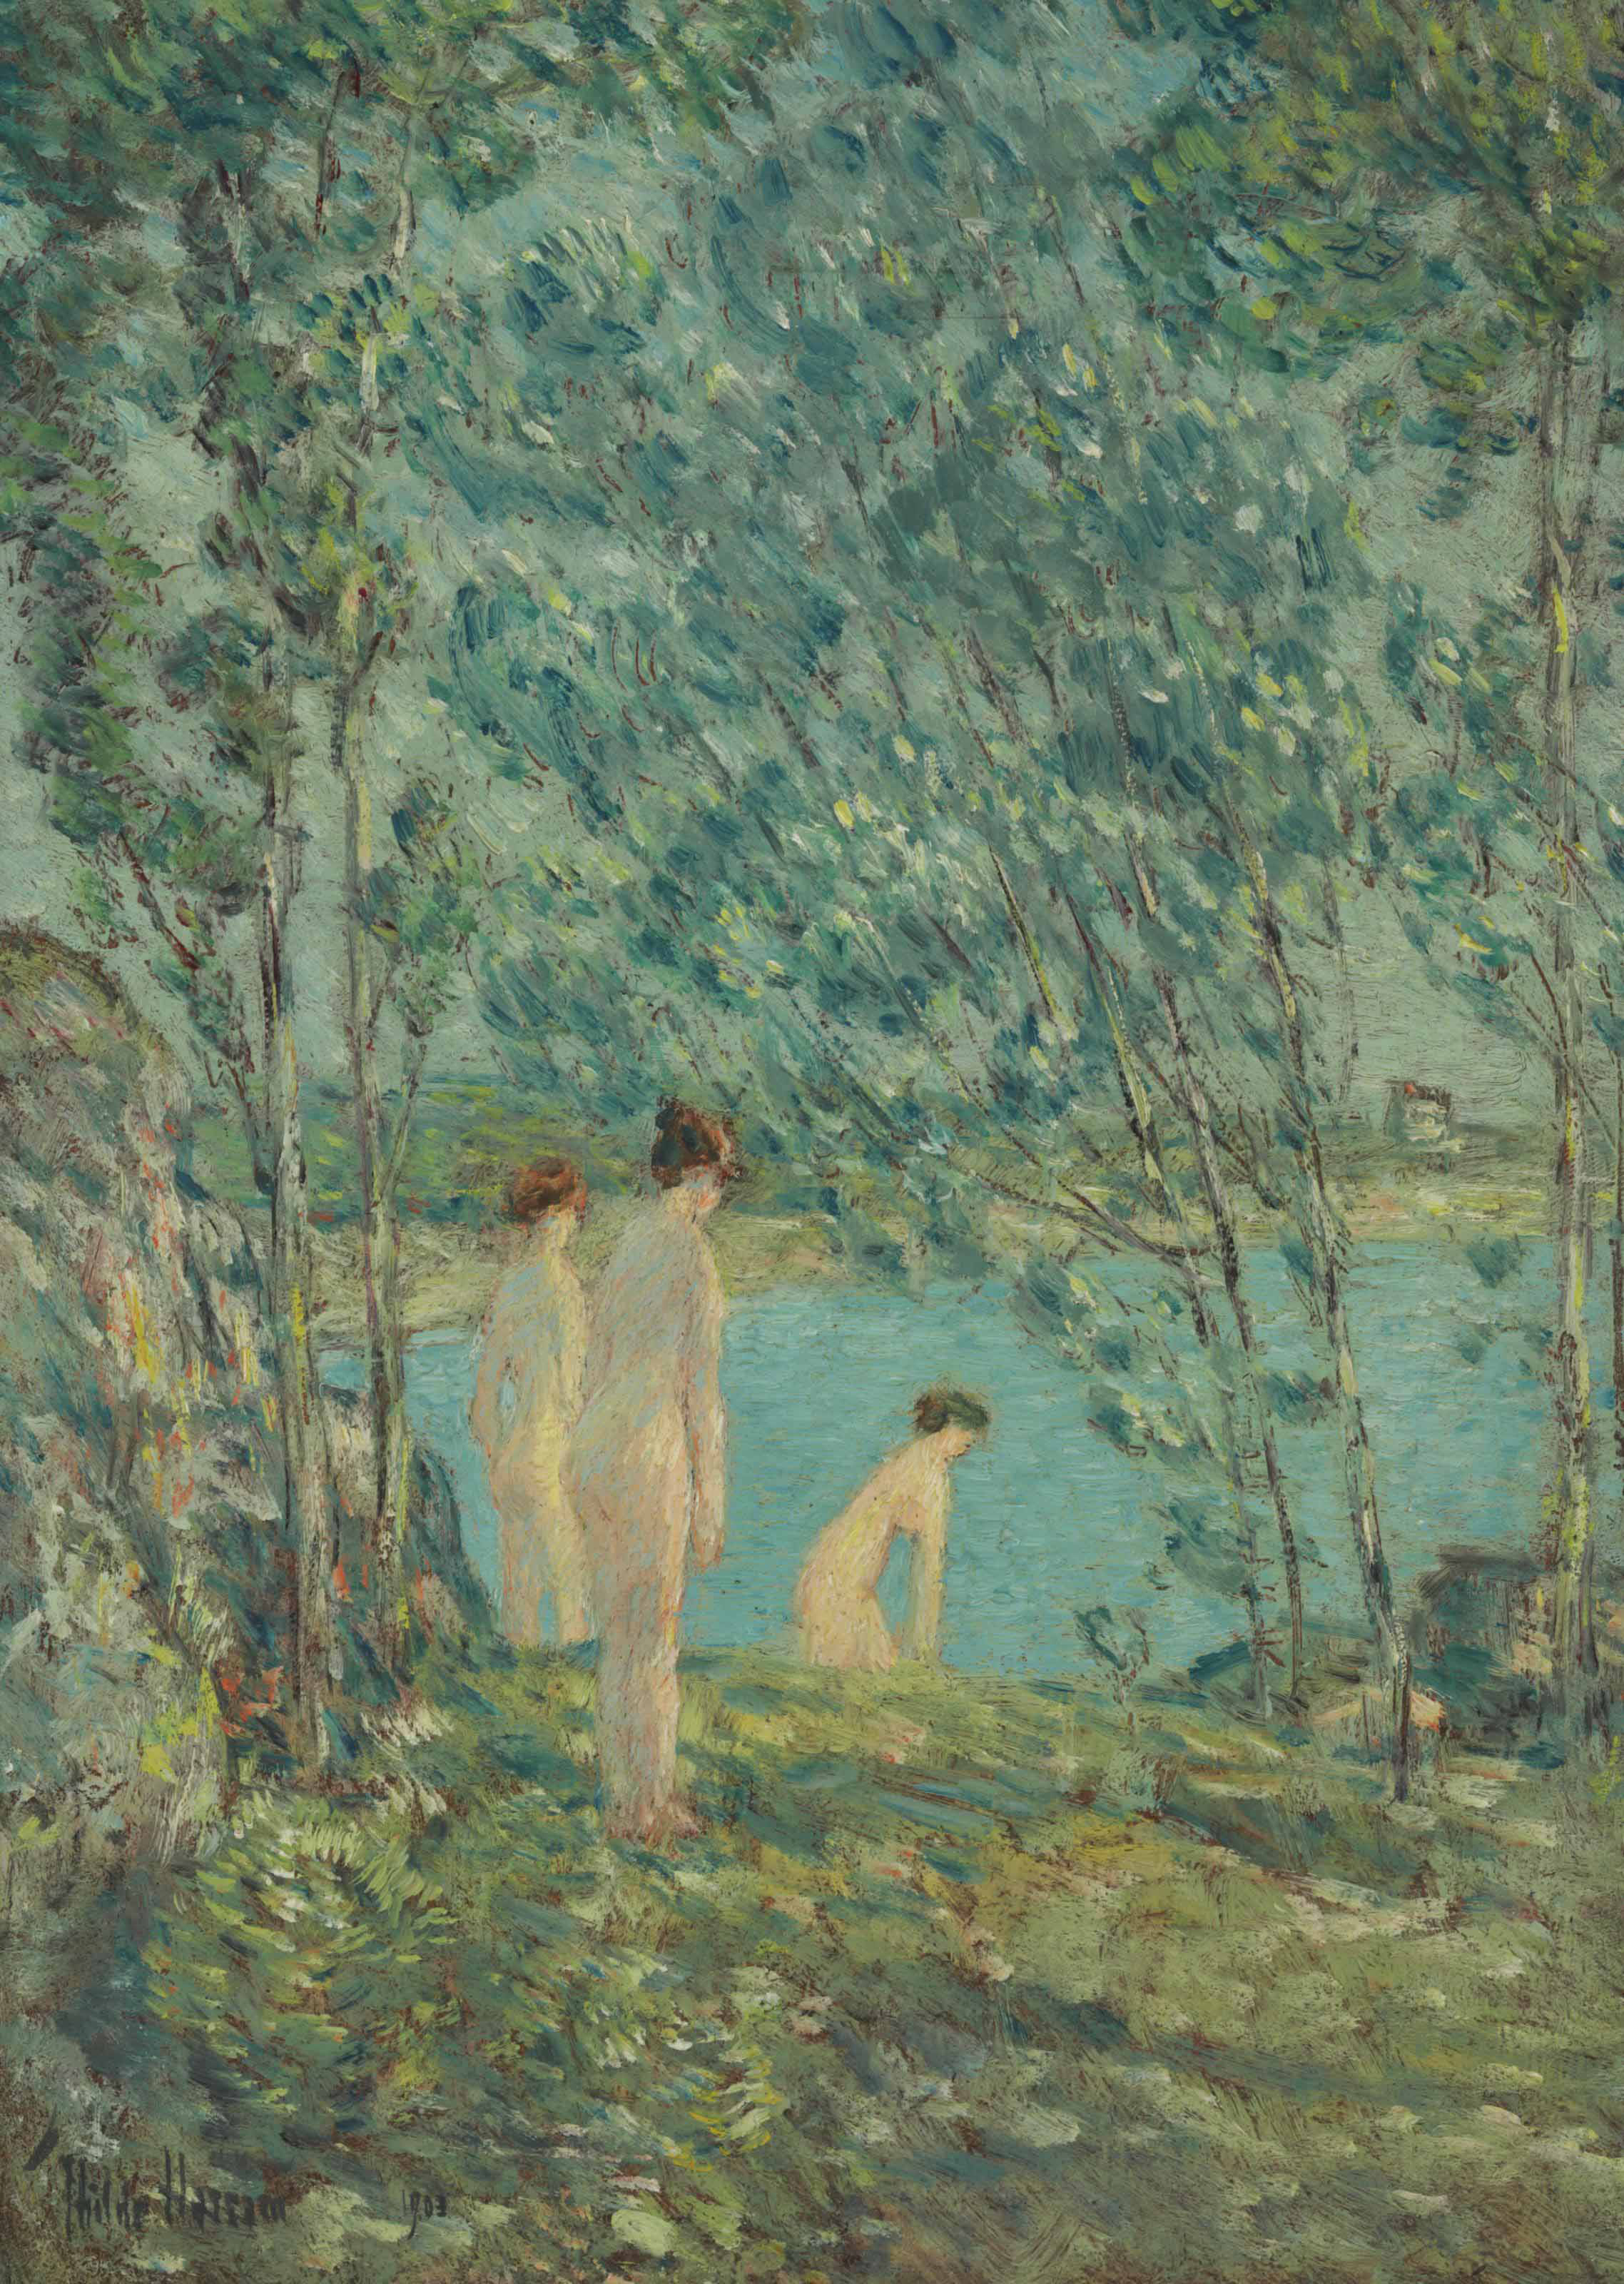 CHILDE HASSAM | American, 1859 – 1935 | The Bathers, 1903 | Oil on board | Public Domain | On Loan from The Owens Foundation | TL20.1